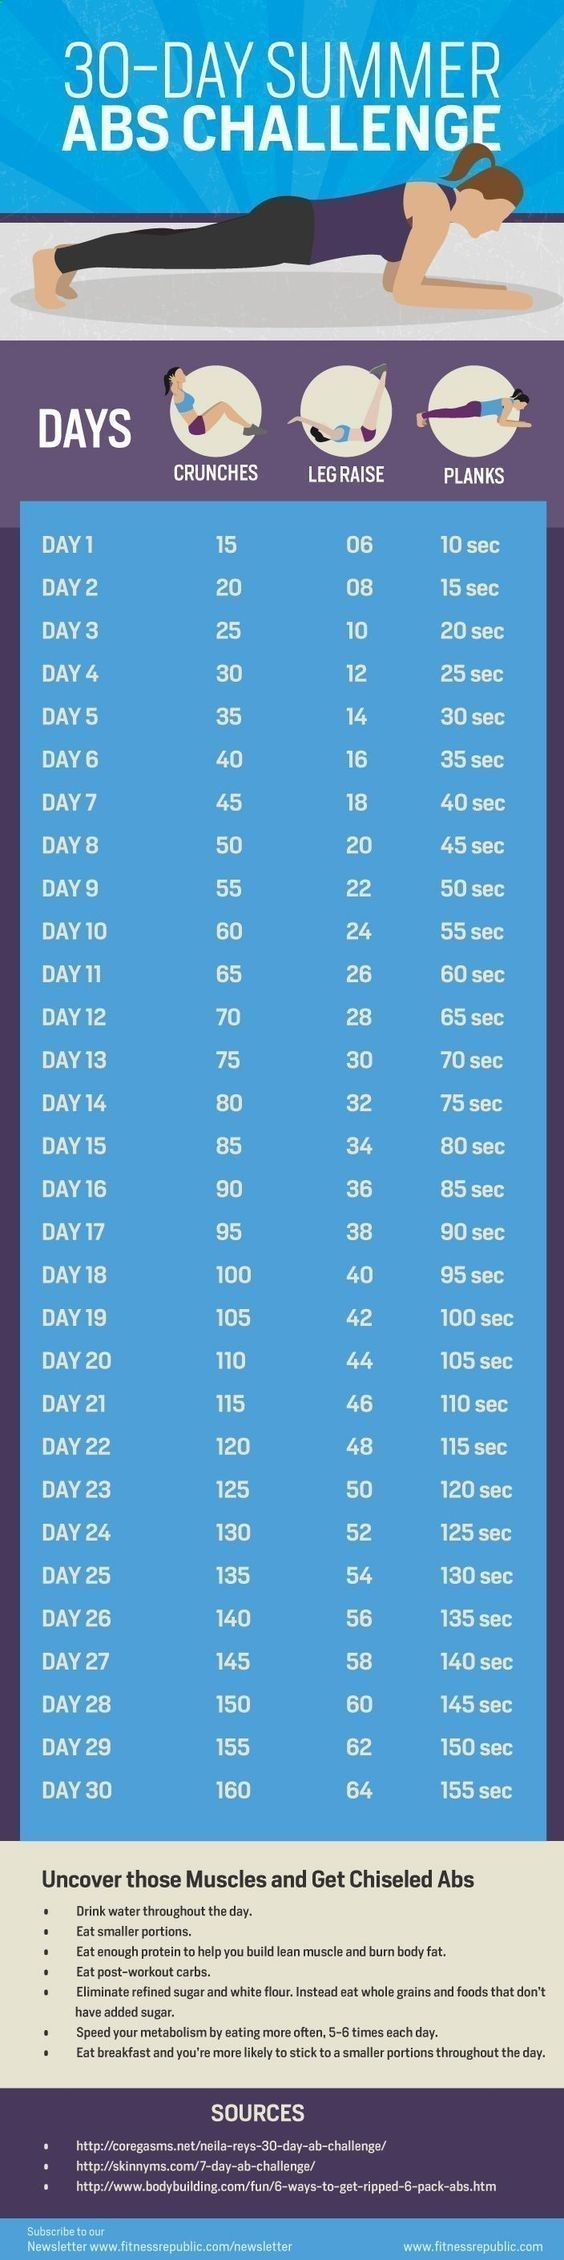 Best 25+ 1200 calorie plan ideas on Pinterest